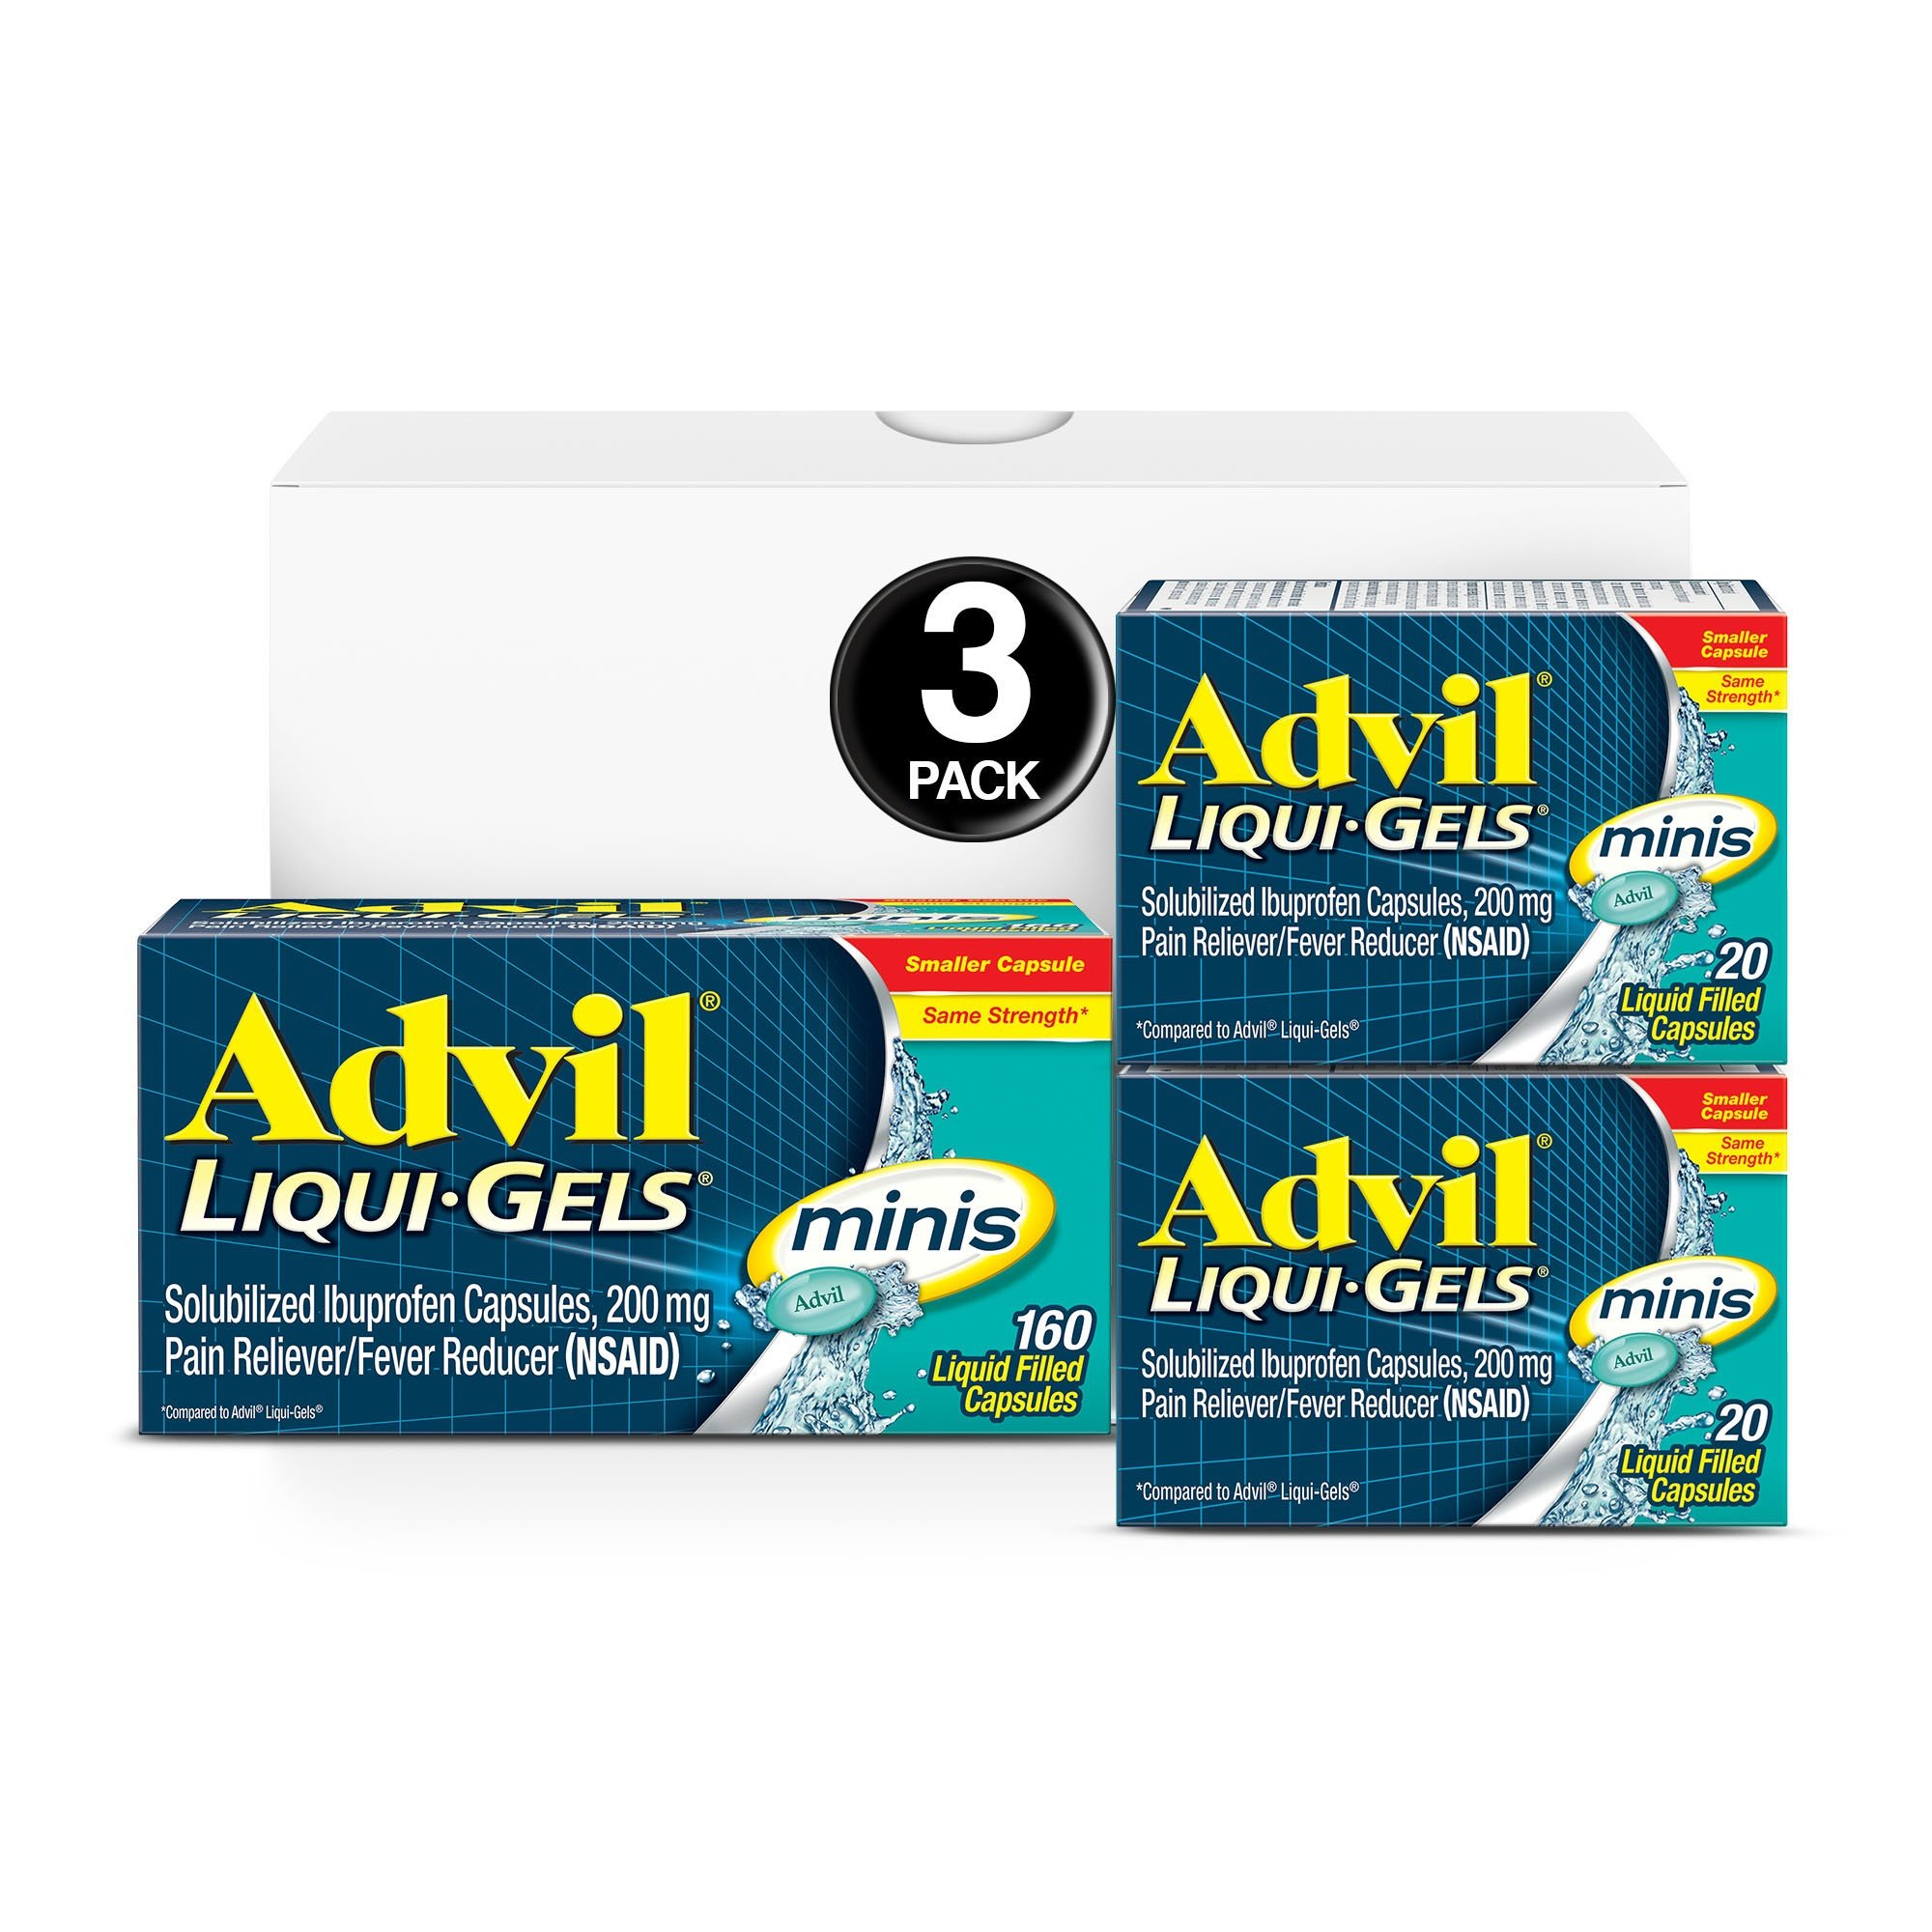 Advil Liqui-Gels minis (160 Count, 20 Count, 20 Count) Home & Away Pack, Pain Reliever/Fever Reducer Liquid Filled Capsule, 200mg Ibuprofen, Easy to Swallow, Temporary Pain Relief,1 Set by Advil